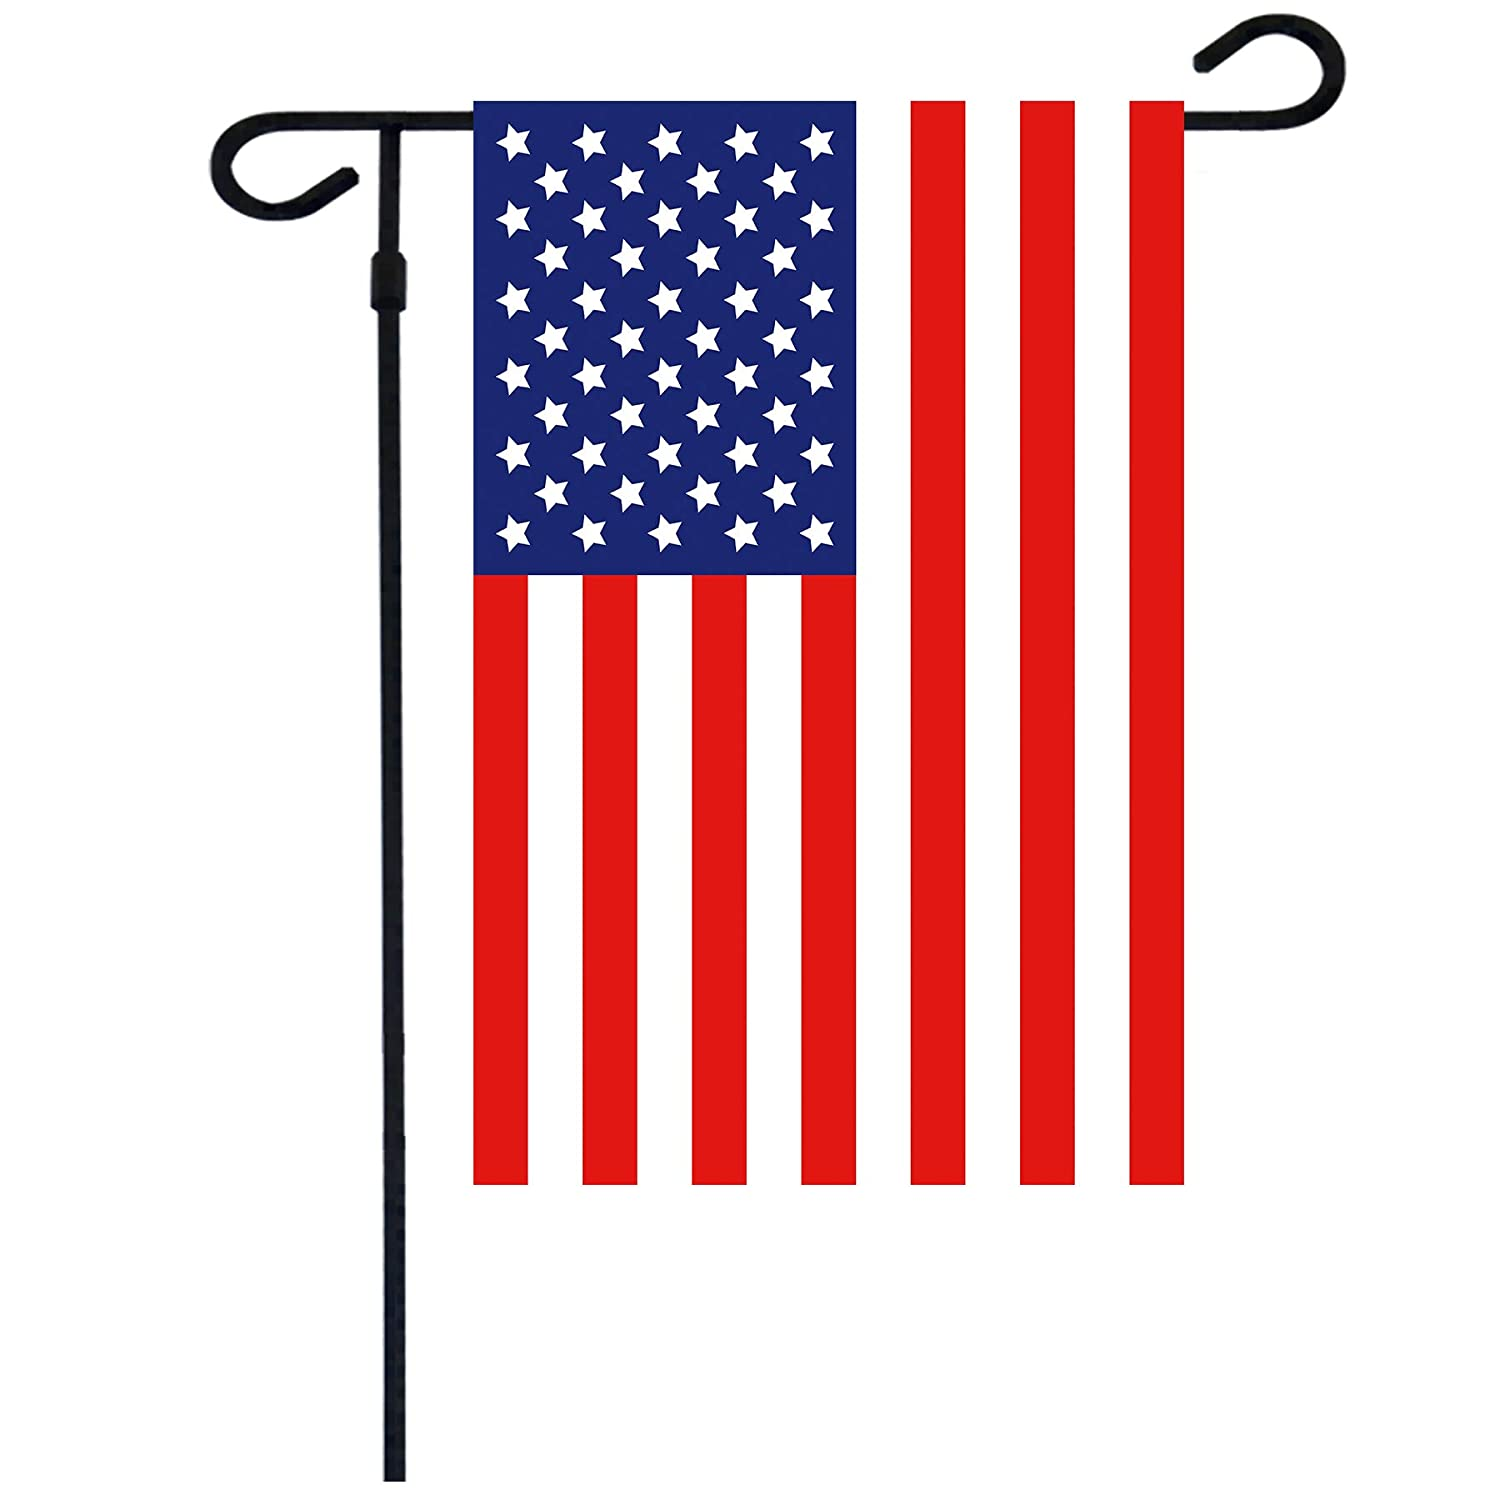 American Flag Garden Flag Double Sided USA Flag 12.5 x 18 Inch Best for Garden Decoration Flags(1 PC)